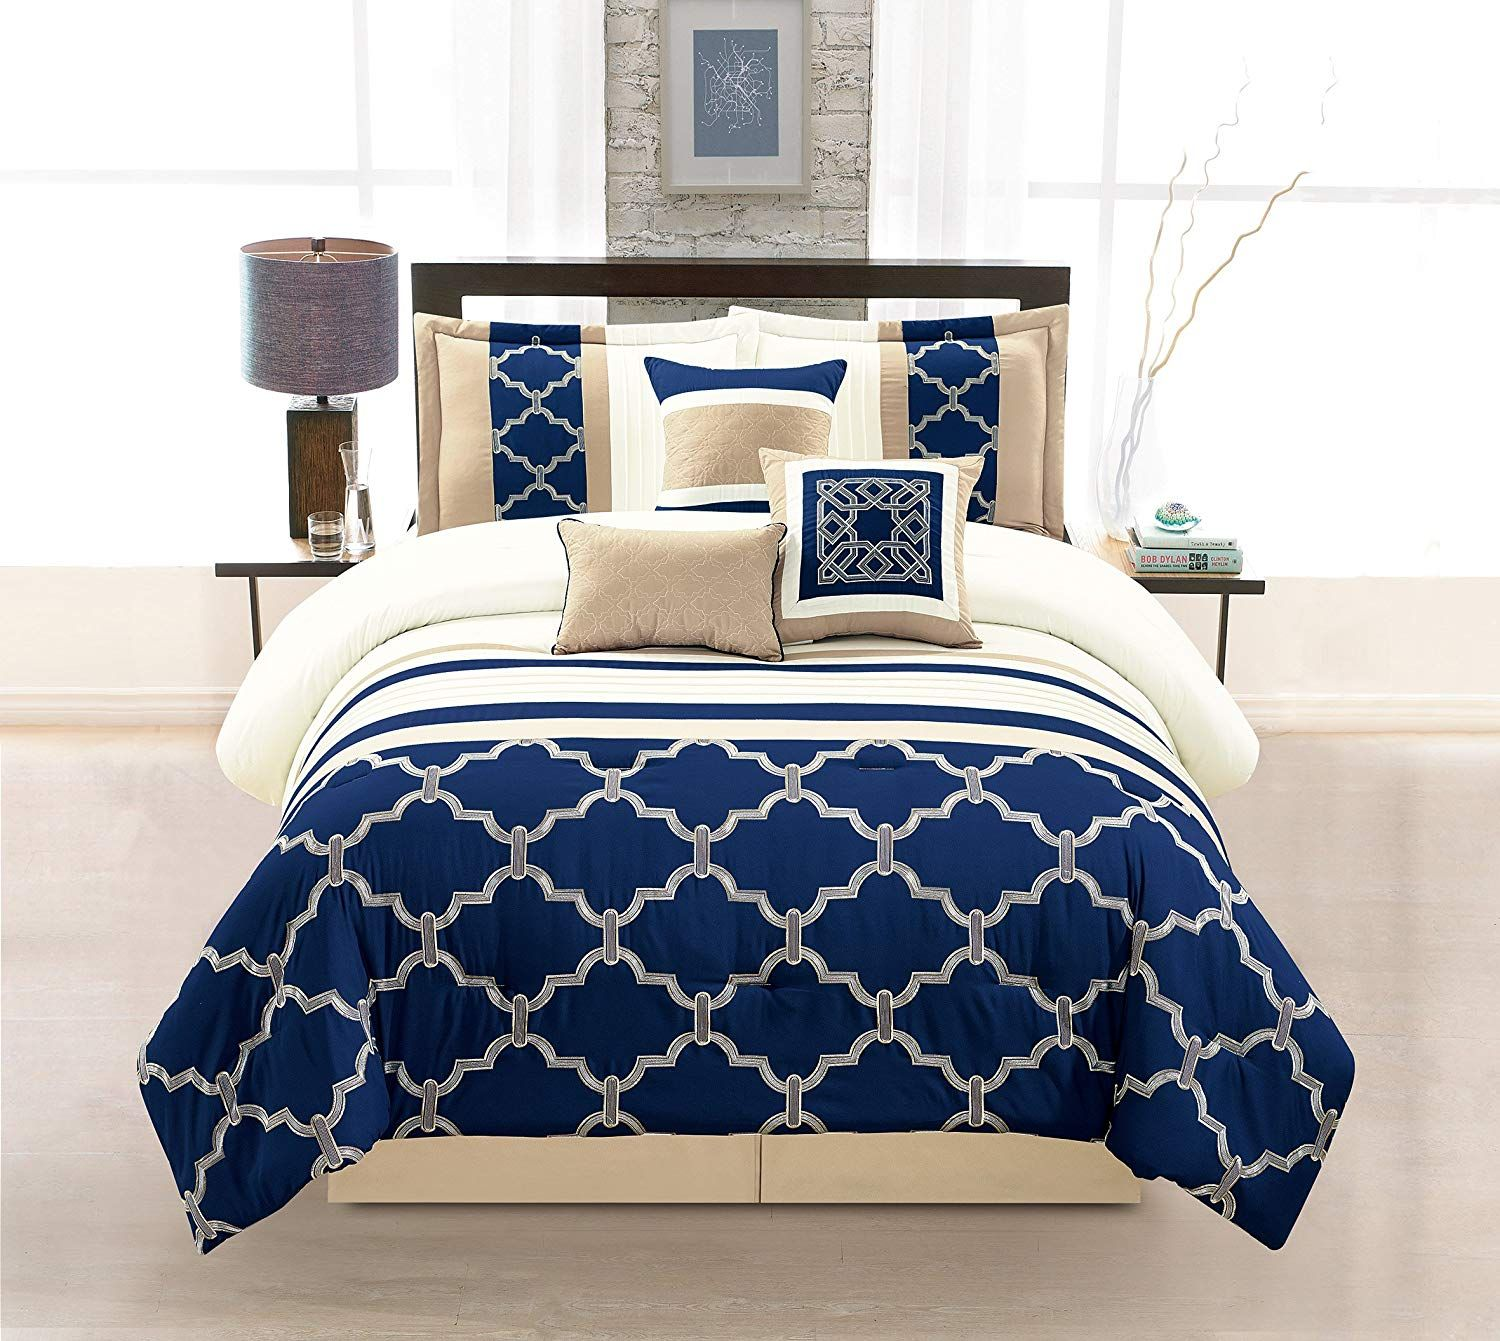 Royal Blue And Navy Bedding Sets Blue And Gold Bedroom Blue Comforter Sets Navy Bed Set Navy blue duvet cover queen